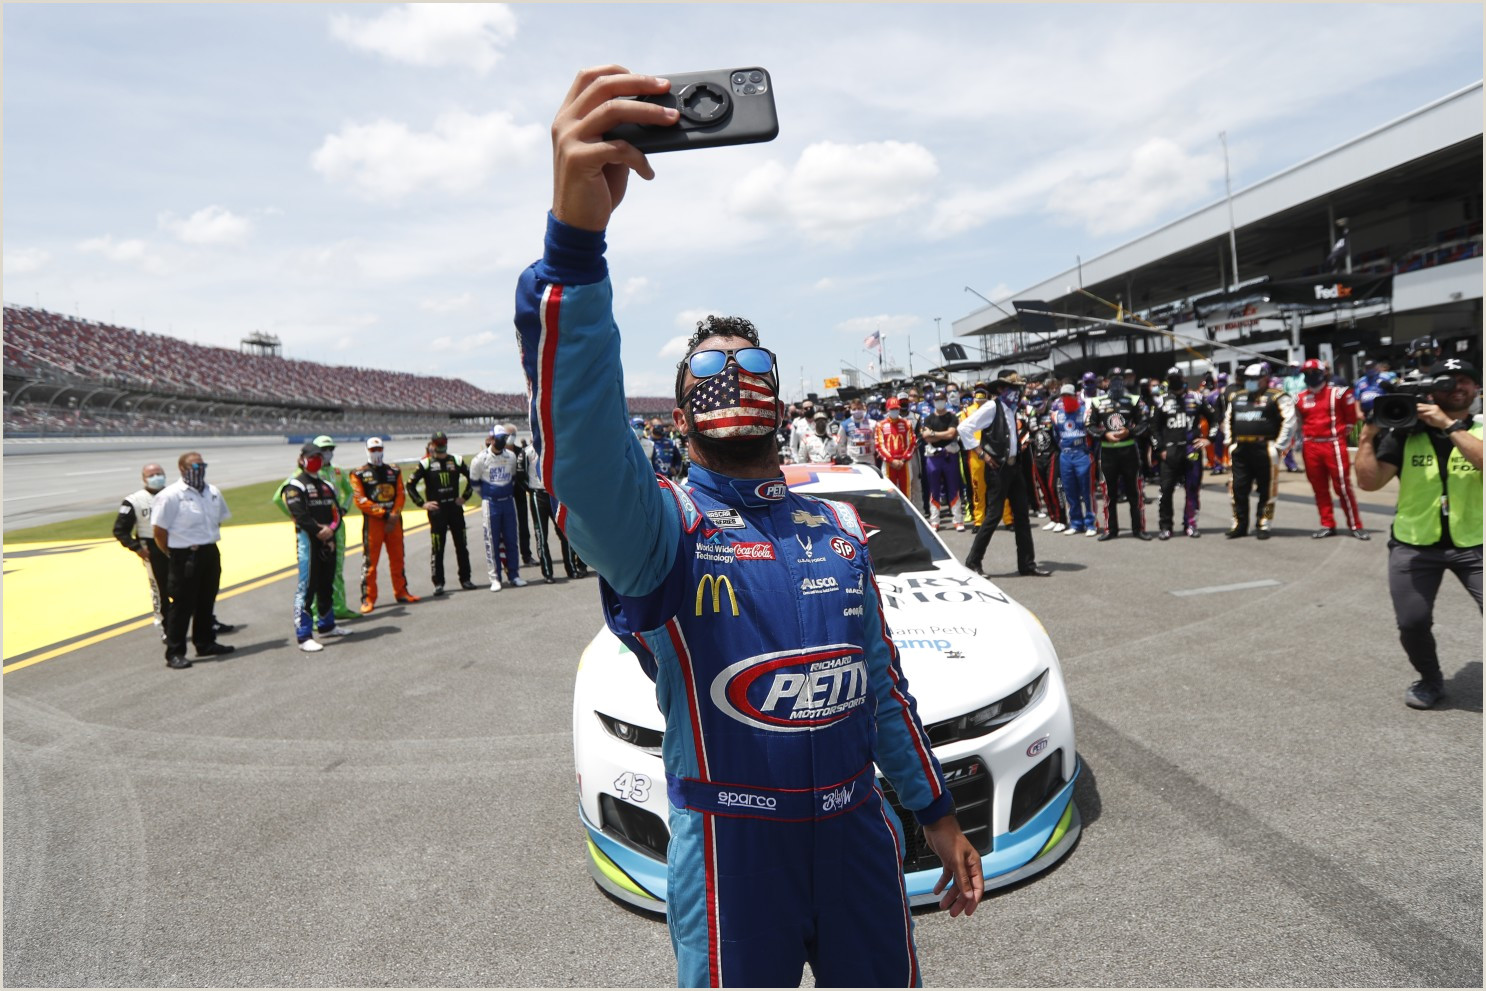 Stand Up Poster Display Nascar Drivers Display Their Support For Bubba Wallace Los